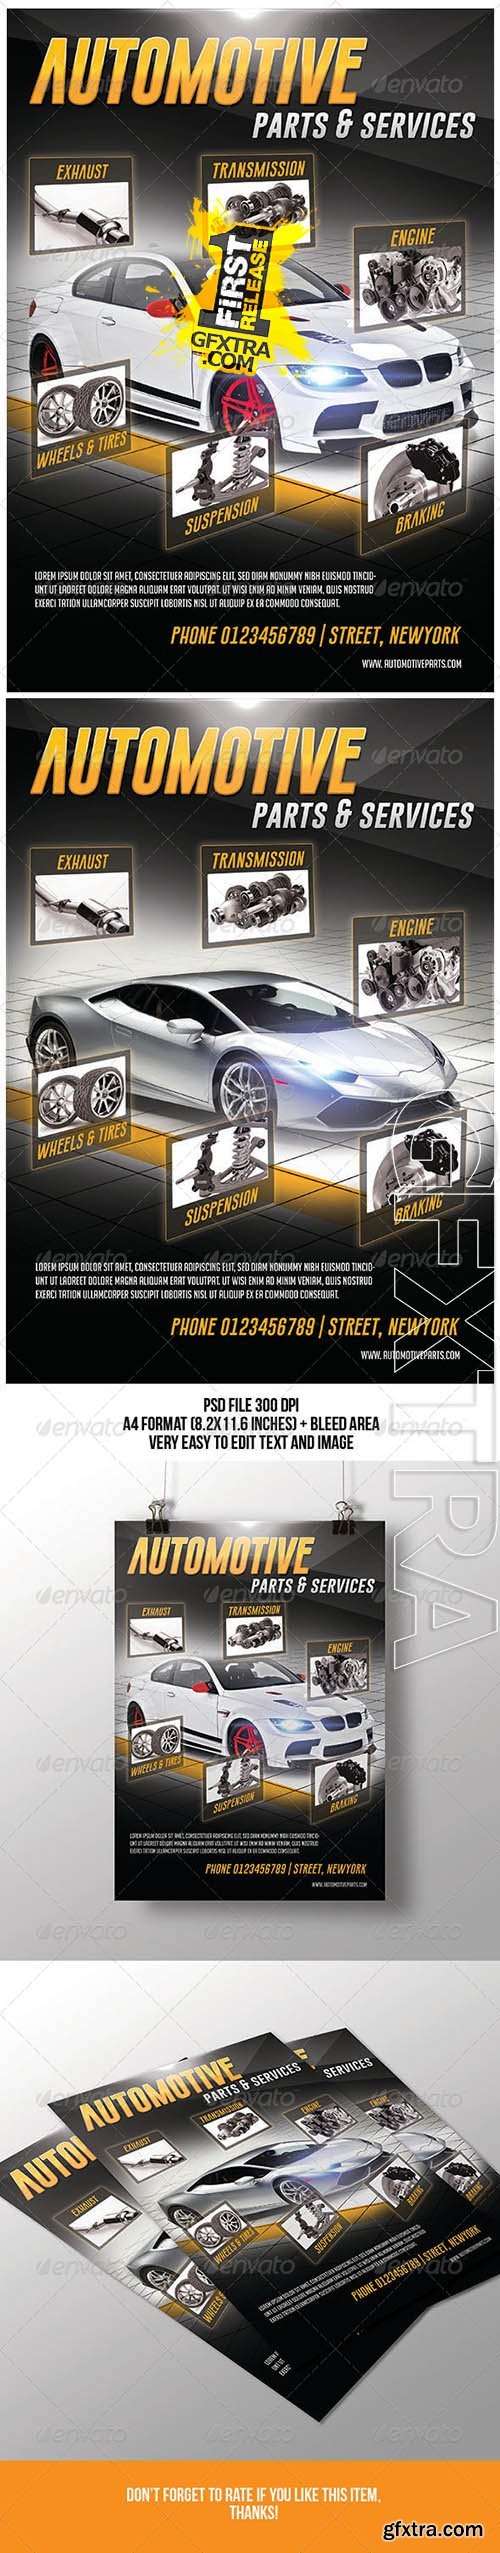 Automotive Parts & Services Flyer 7144154